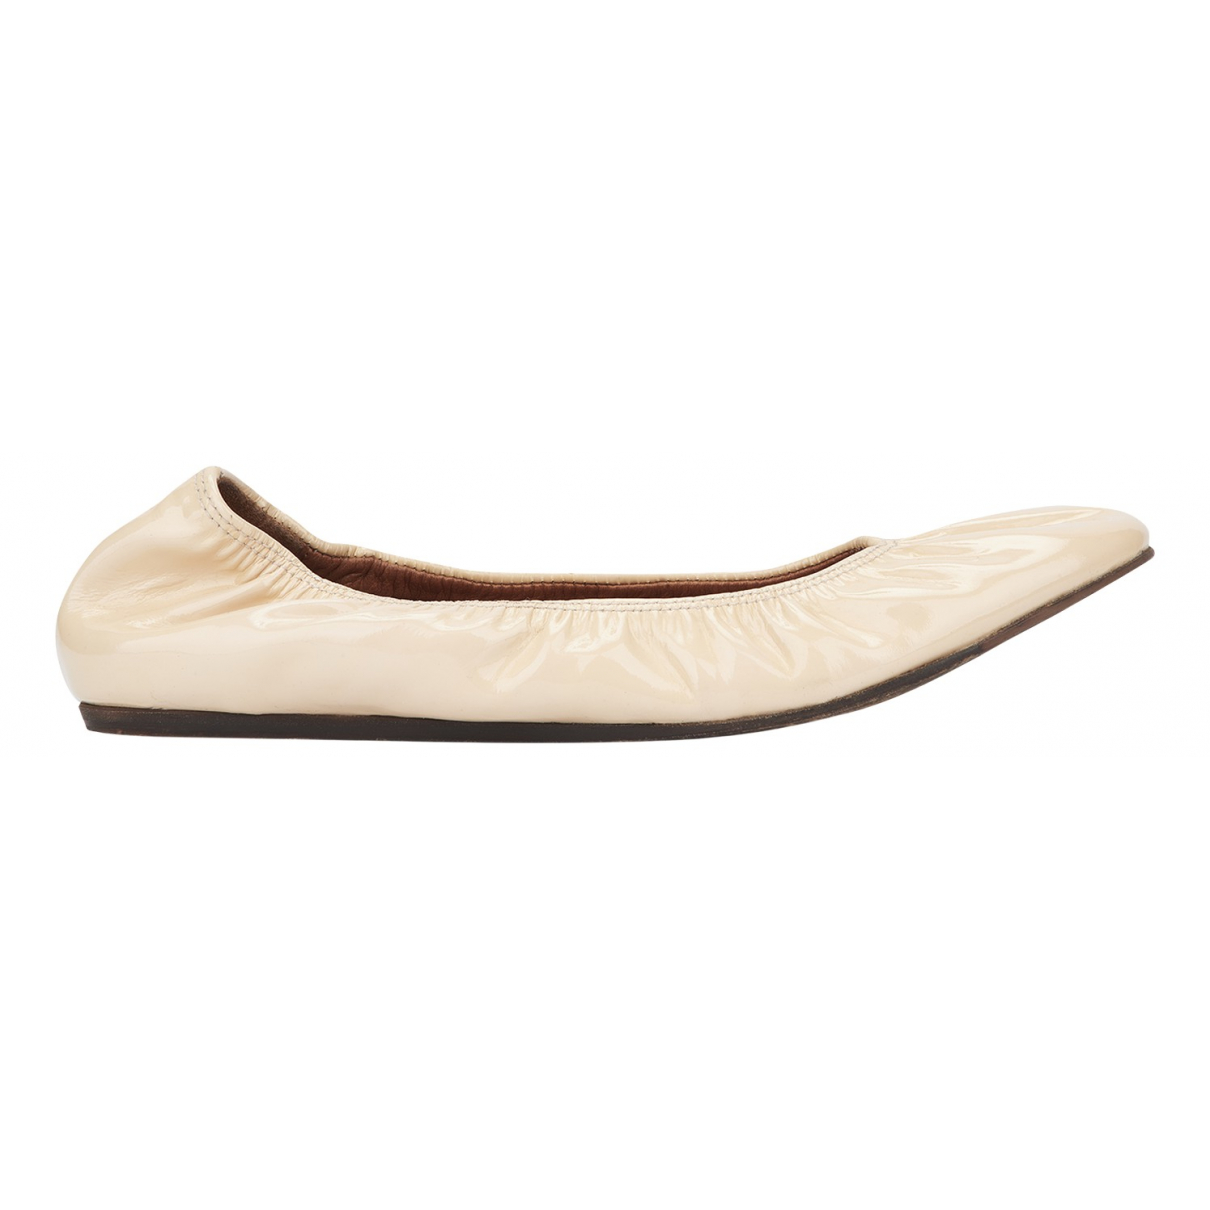 Lanvin N Ecru Patent leather Ballet flats for Women 3 UK